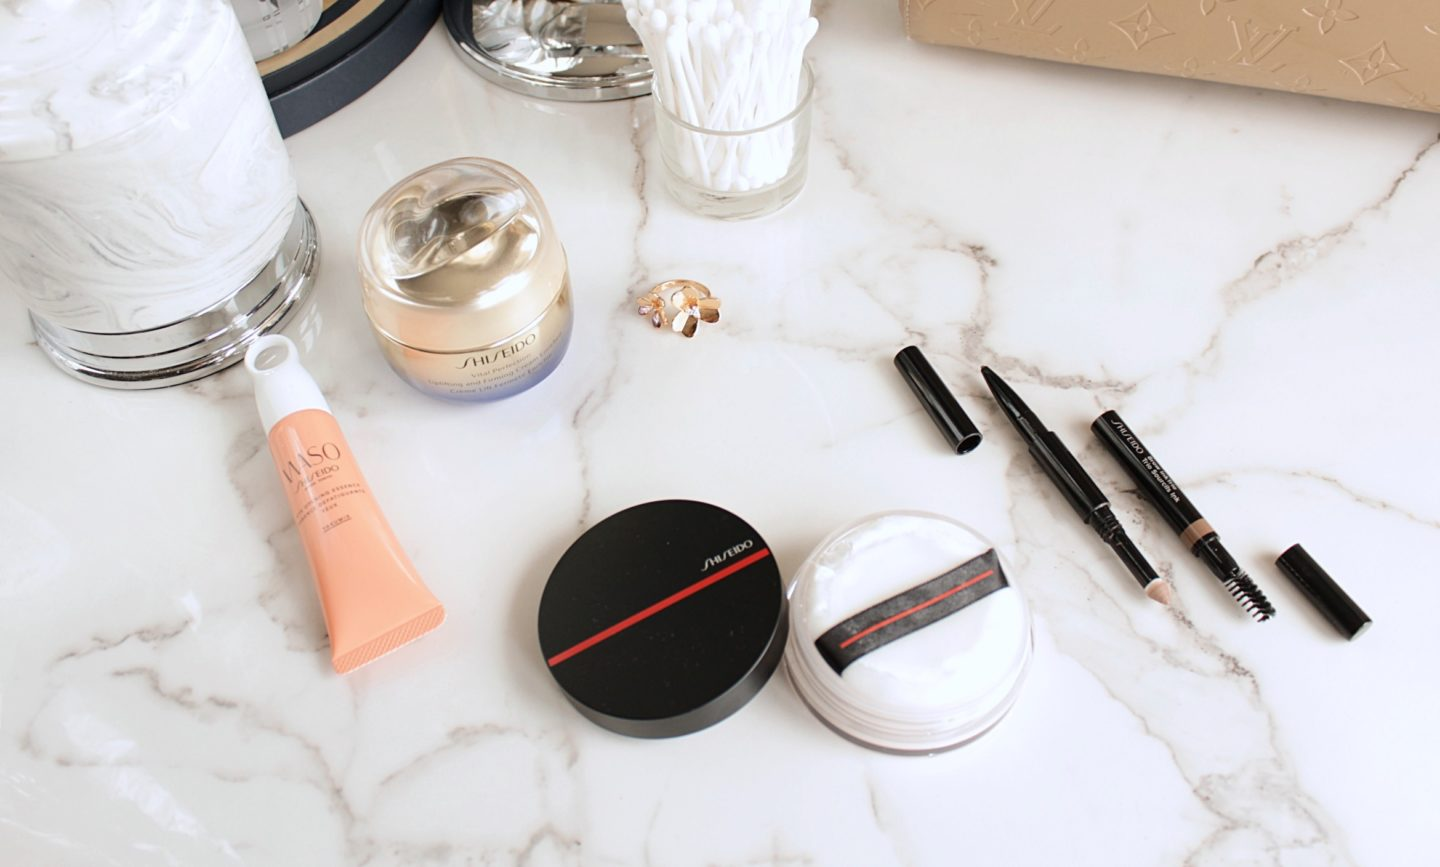 Shiseido | Recent Skin and Makeup Discoveries